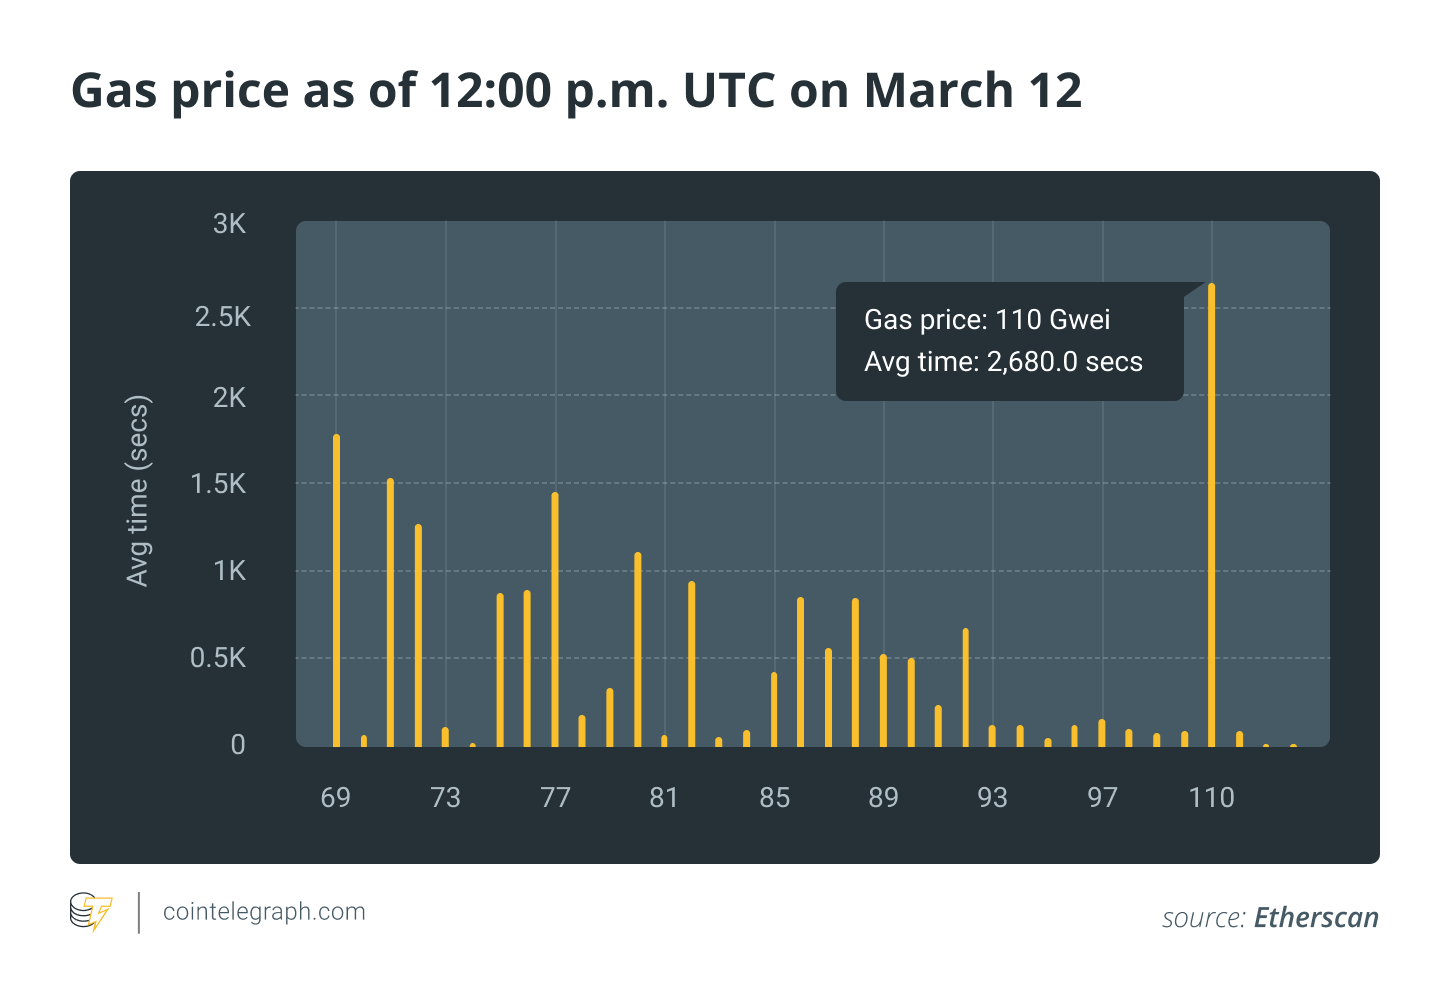 Gas price as of 12:00 p.m. UTC on March 12